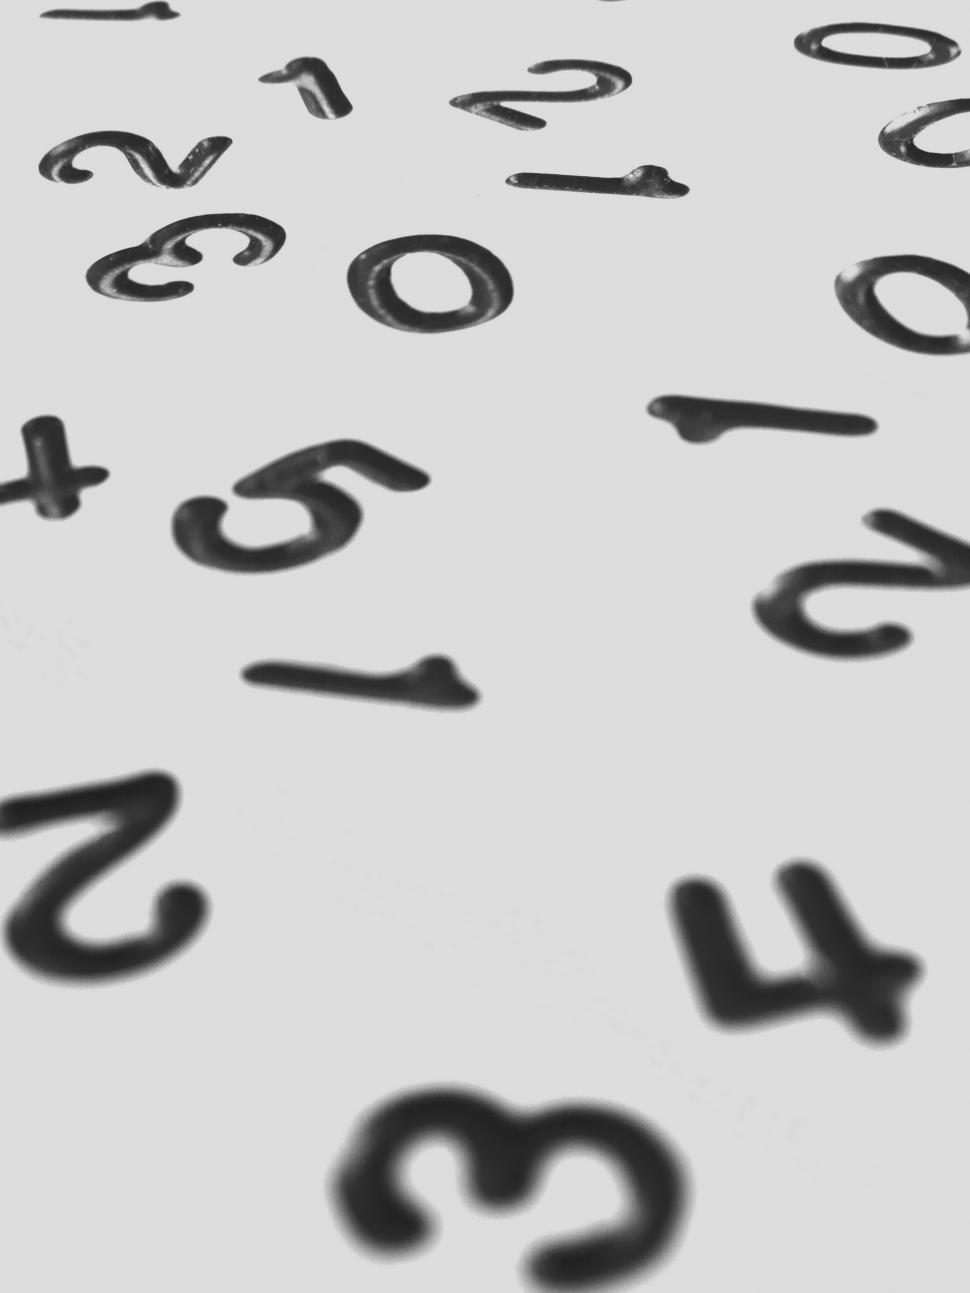 Download Free Stock Photo of Random Numbers